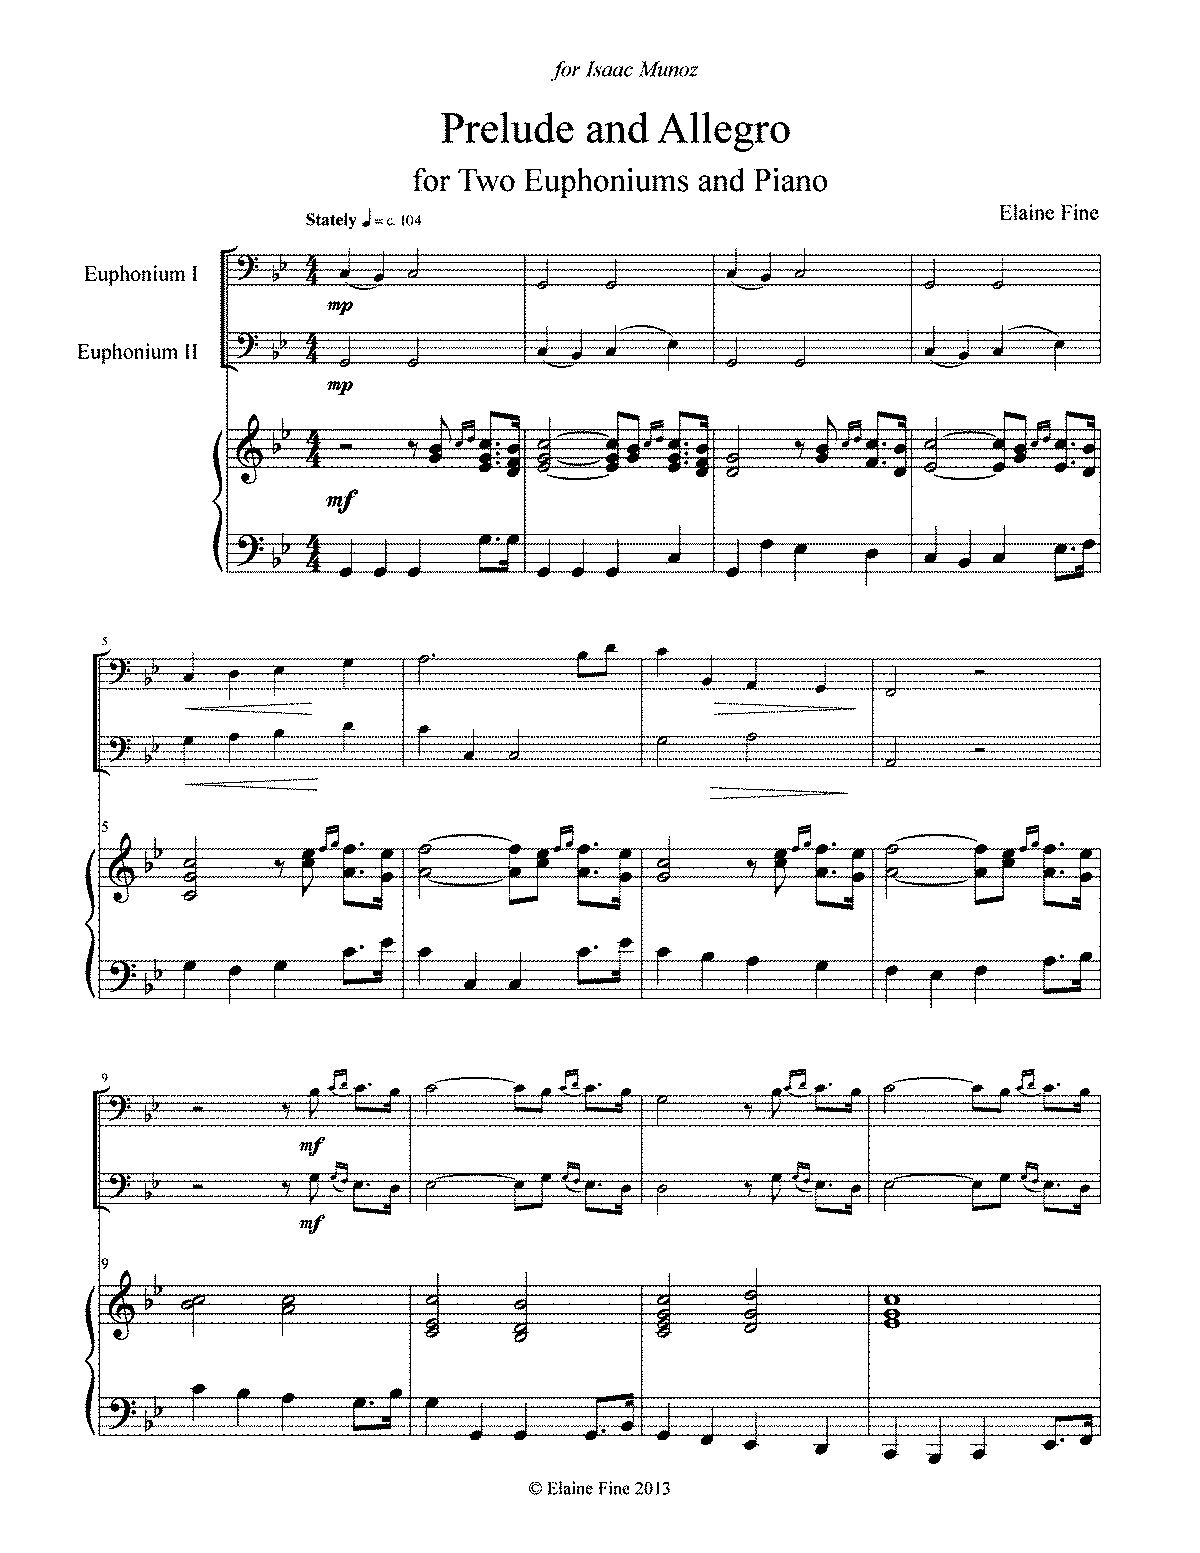 PMLP522772-Prelude and Allegro Score and Parts.pdf